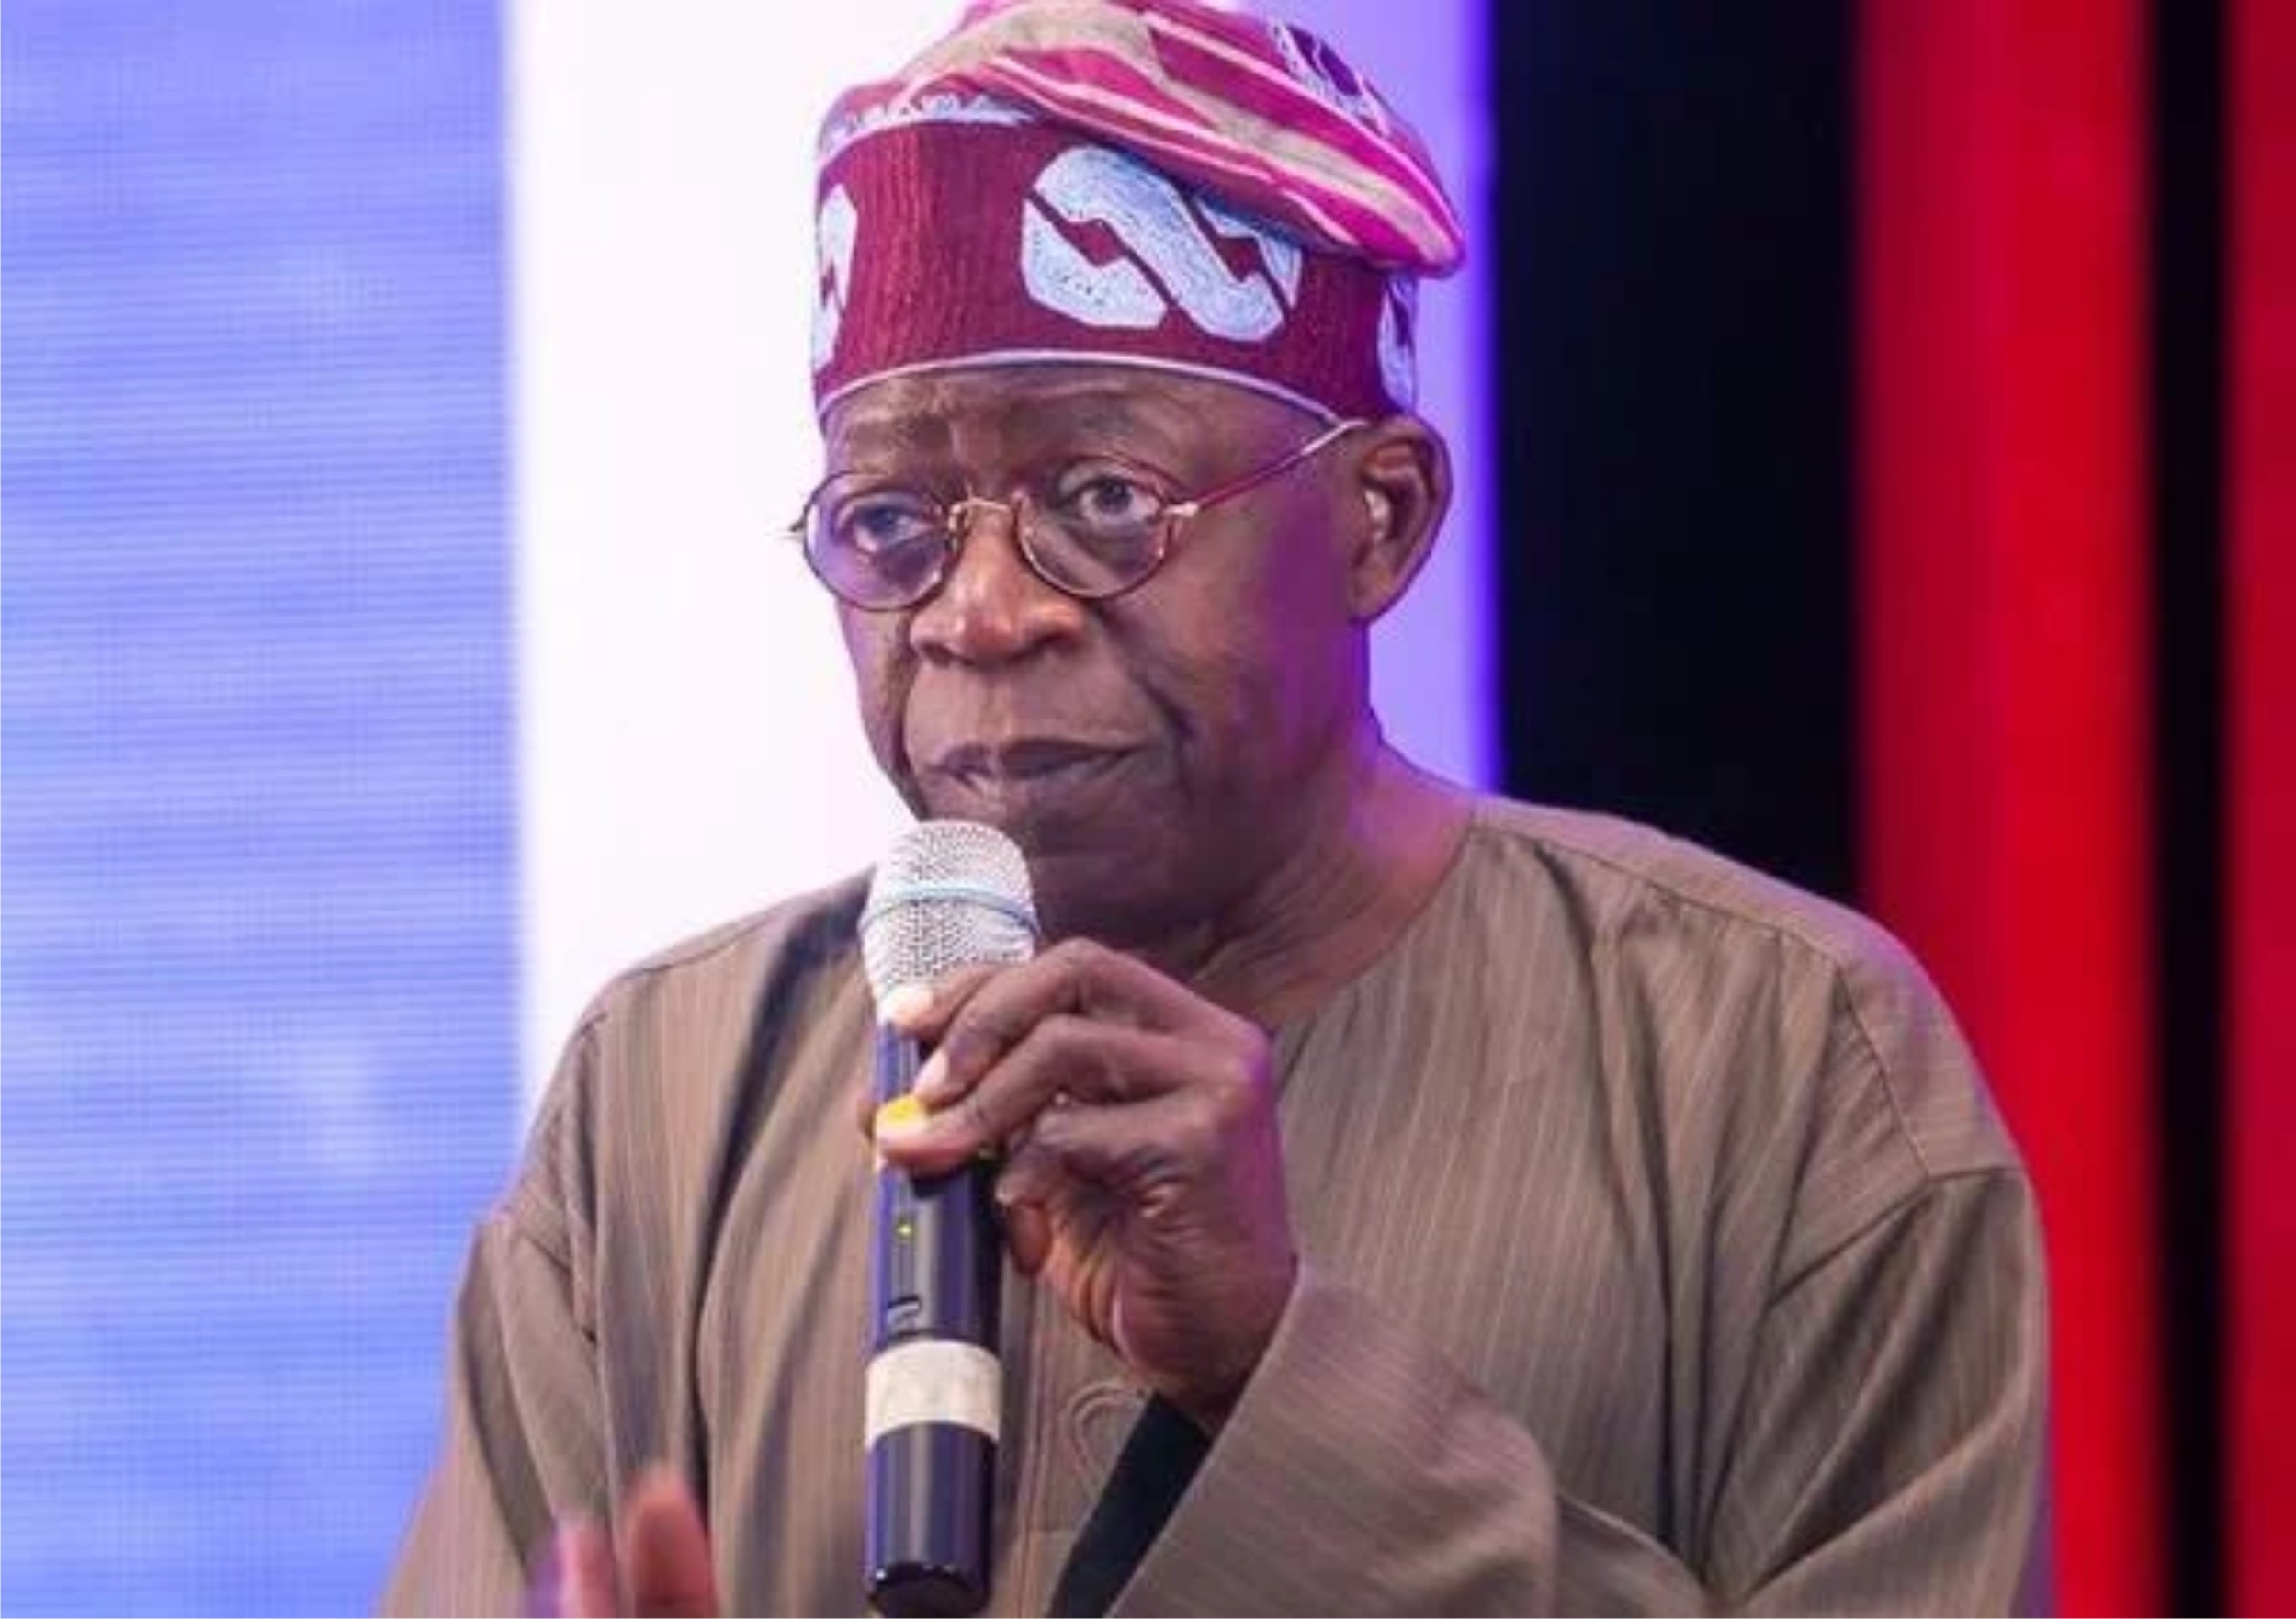 Christmas: Tinubu urges Nigerians to rise above differences